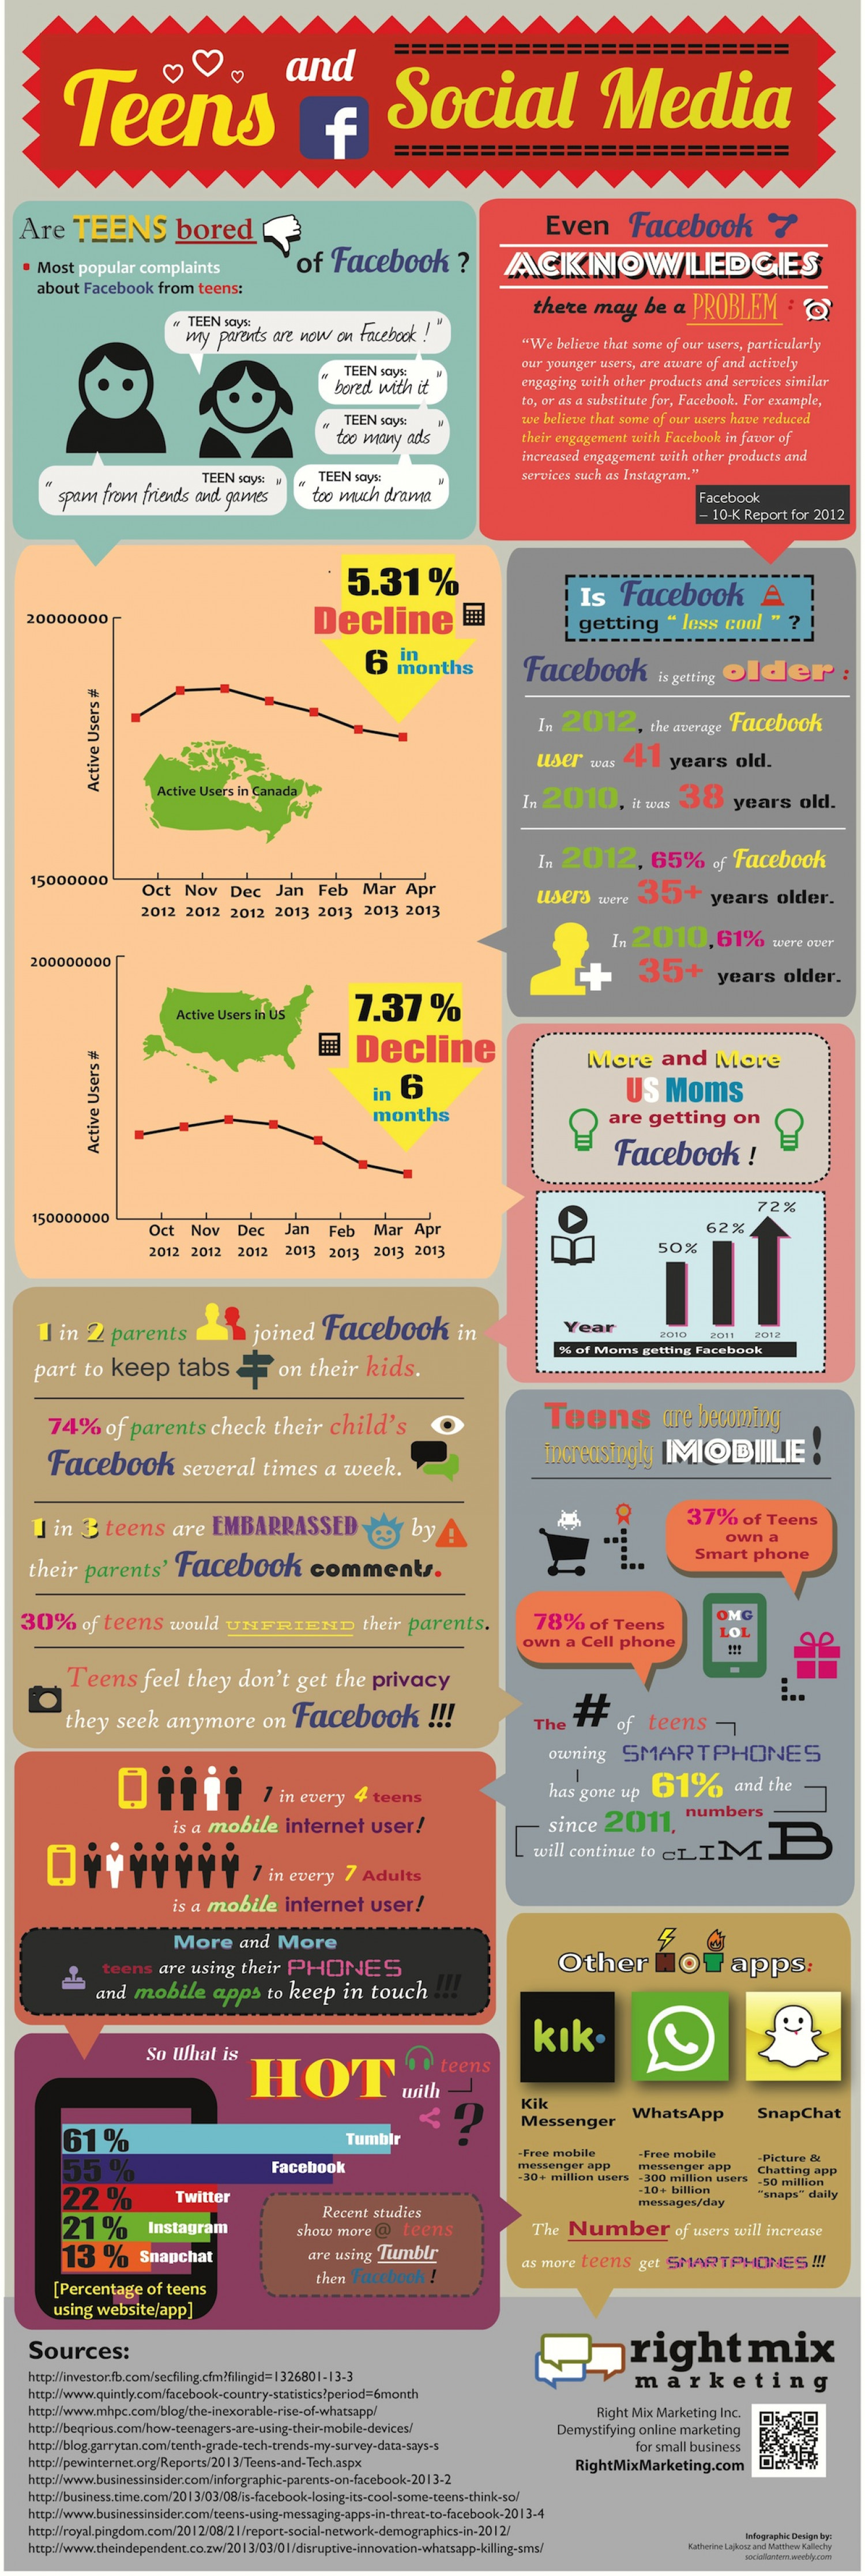 Teens and Social Media Infographic